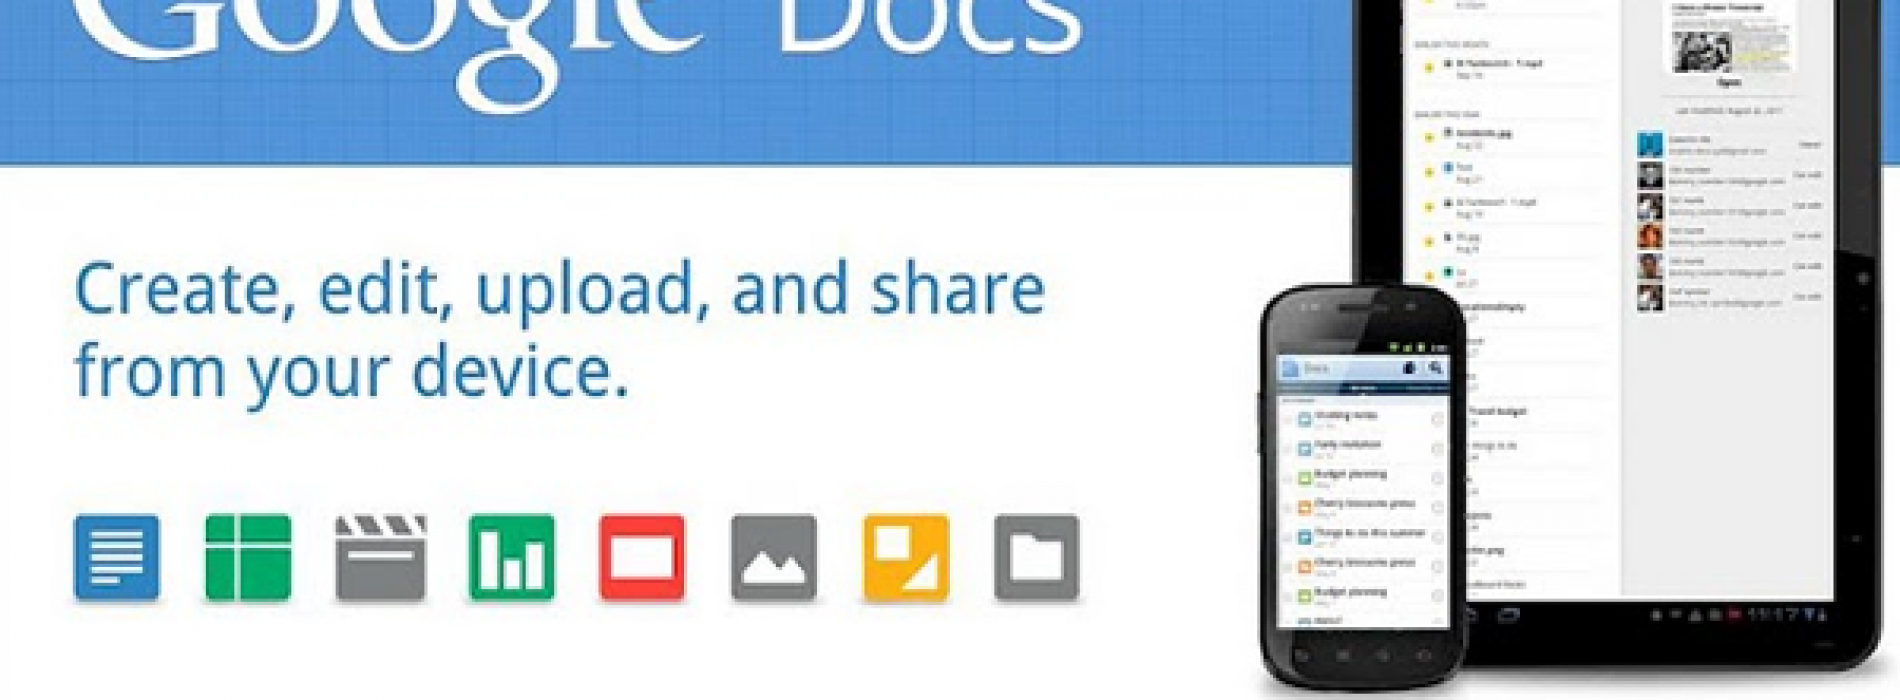 Google Docs for Android adds real-time collaboration, rich text